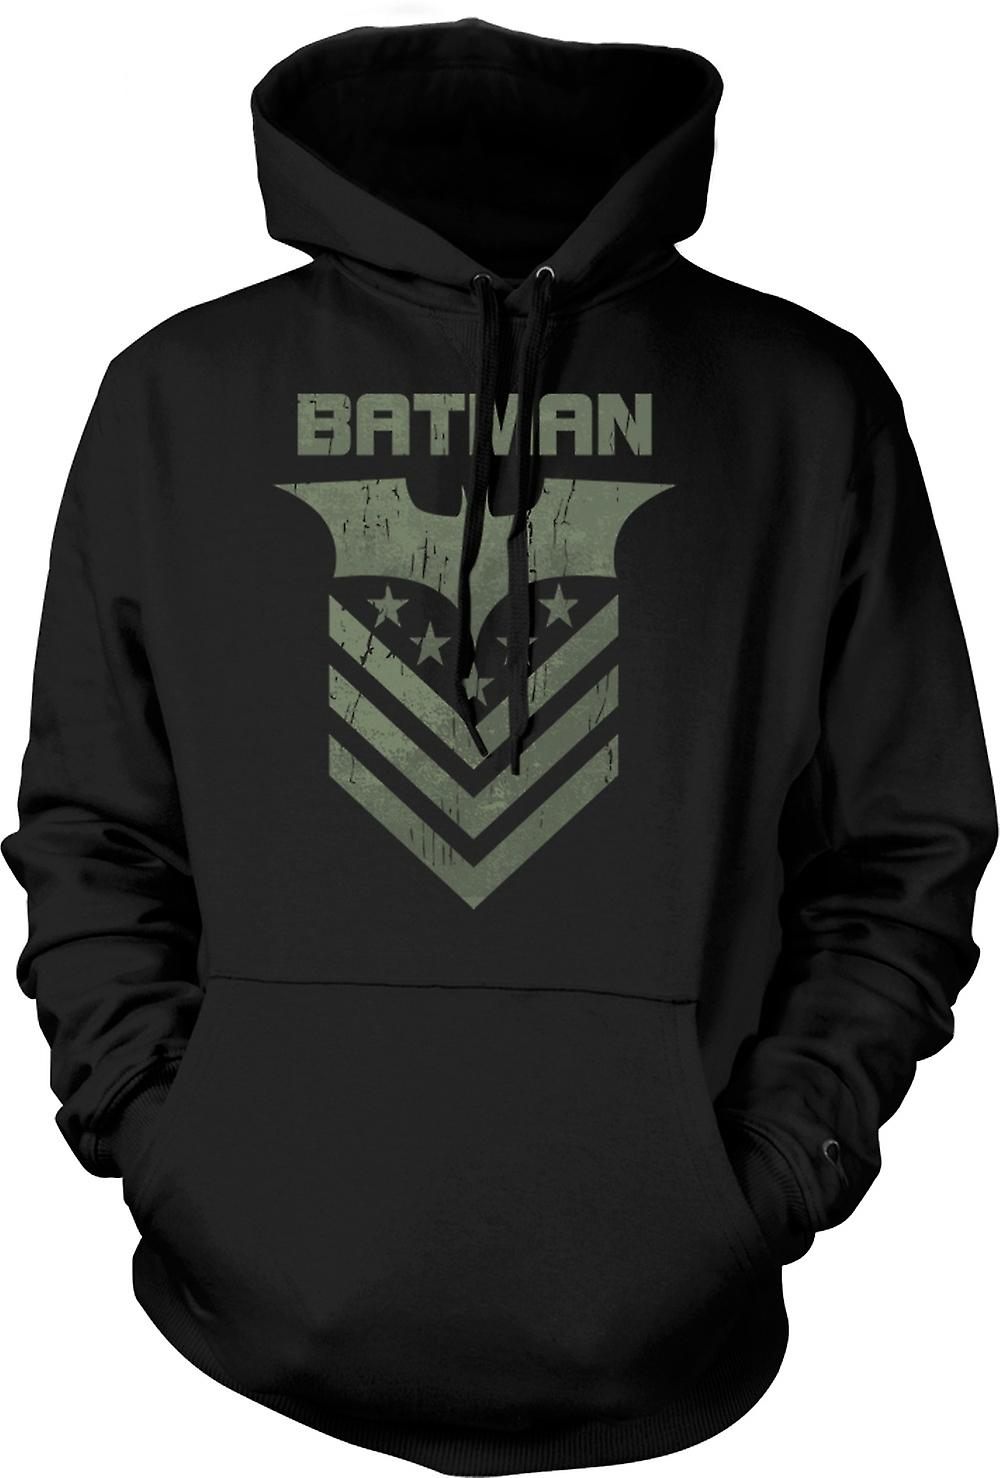 Mens Hoodie - Batman Dark Knight Stars And Stripes